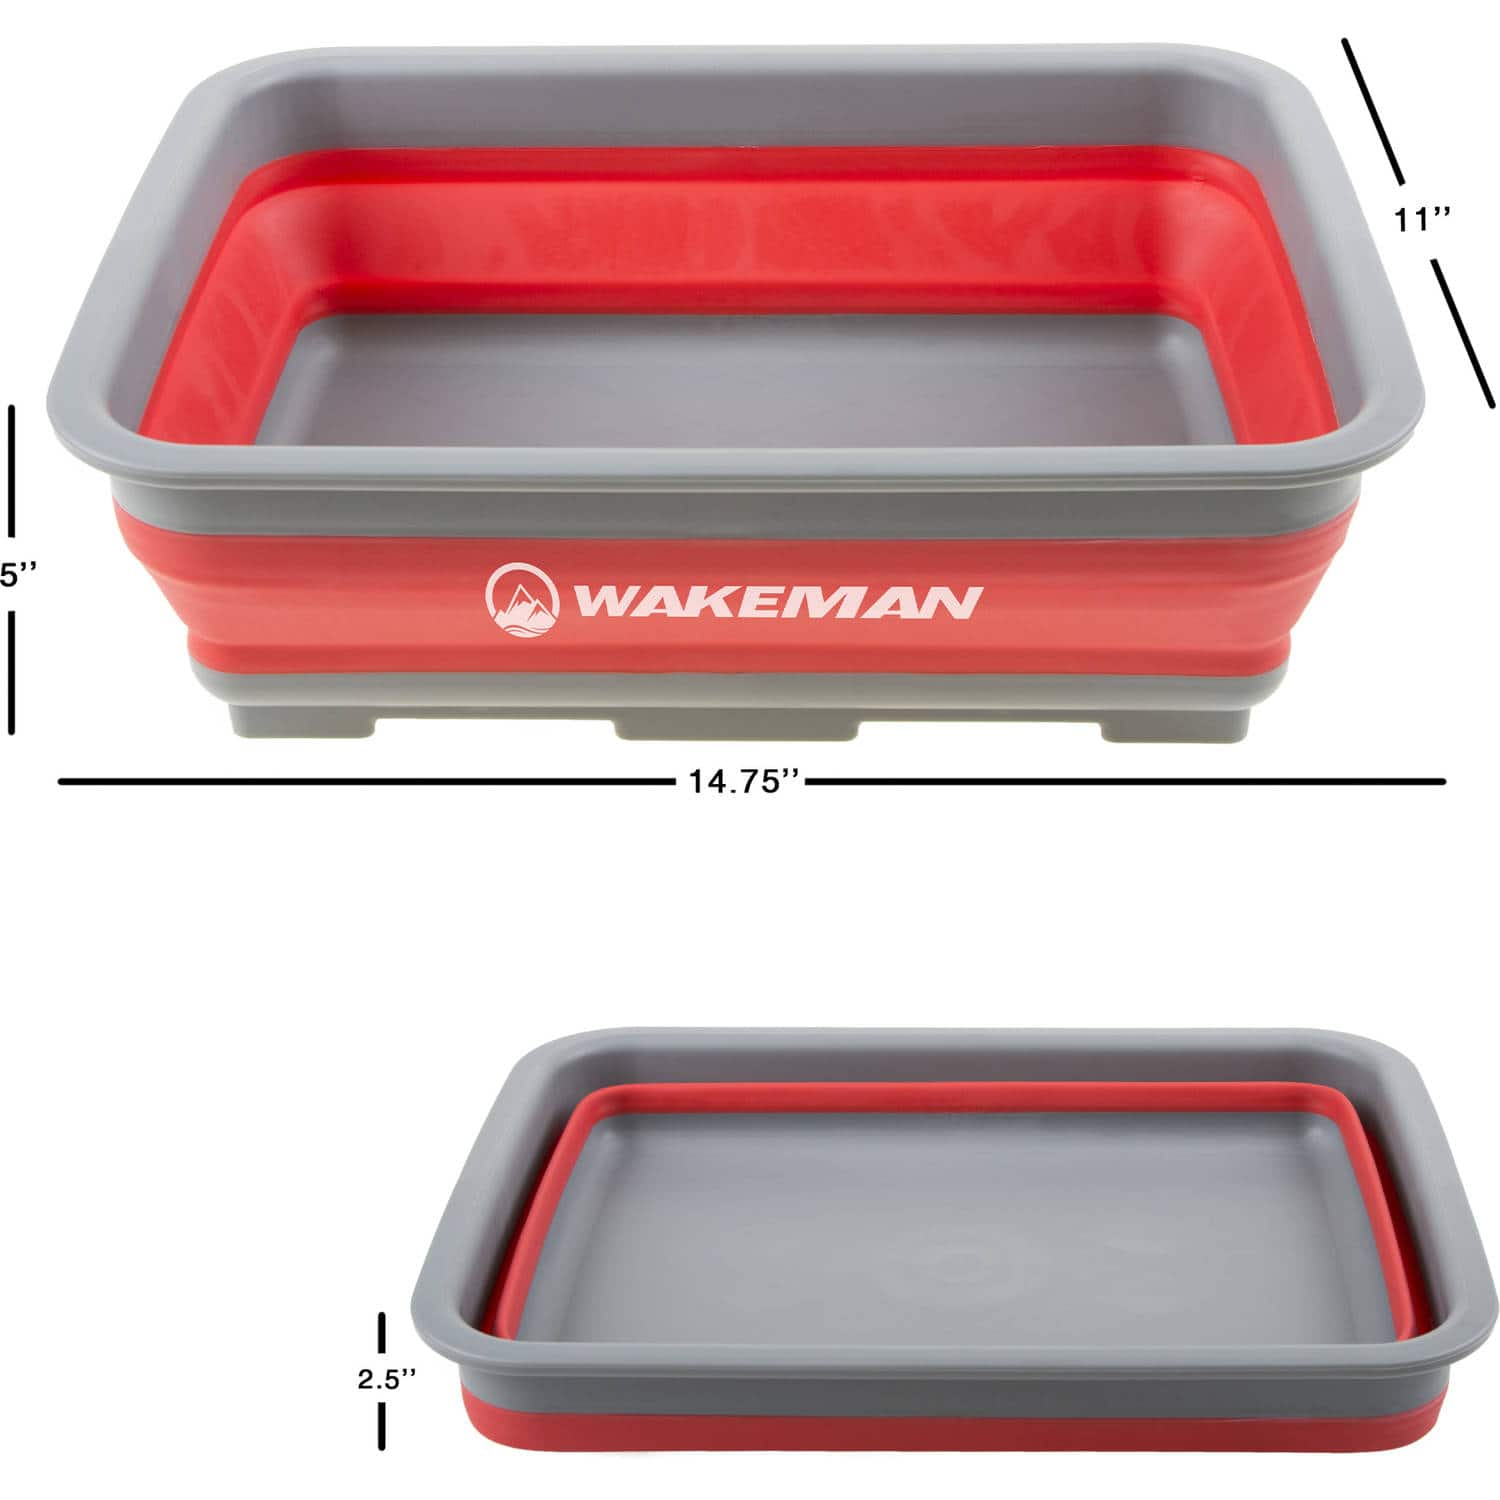 Collapsible Multiuse Wash Bin- Portable Wash Basin/Dish Tub/Ice Bucket with 10 L Capacity for Camping, Tailgating, More by Wakeman Outdoors (Red)  $8.84